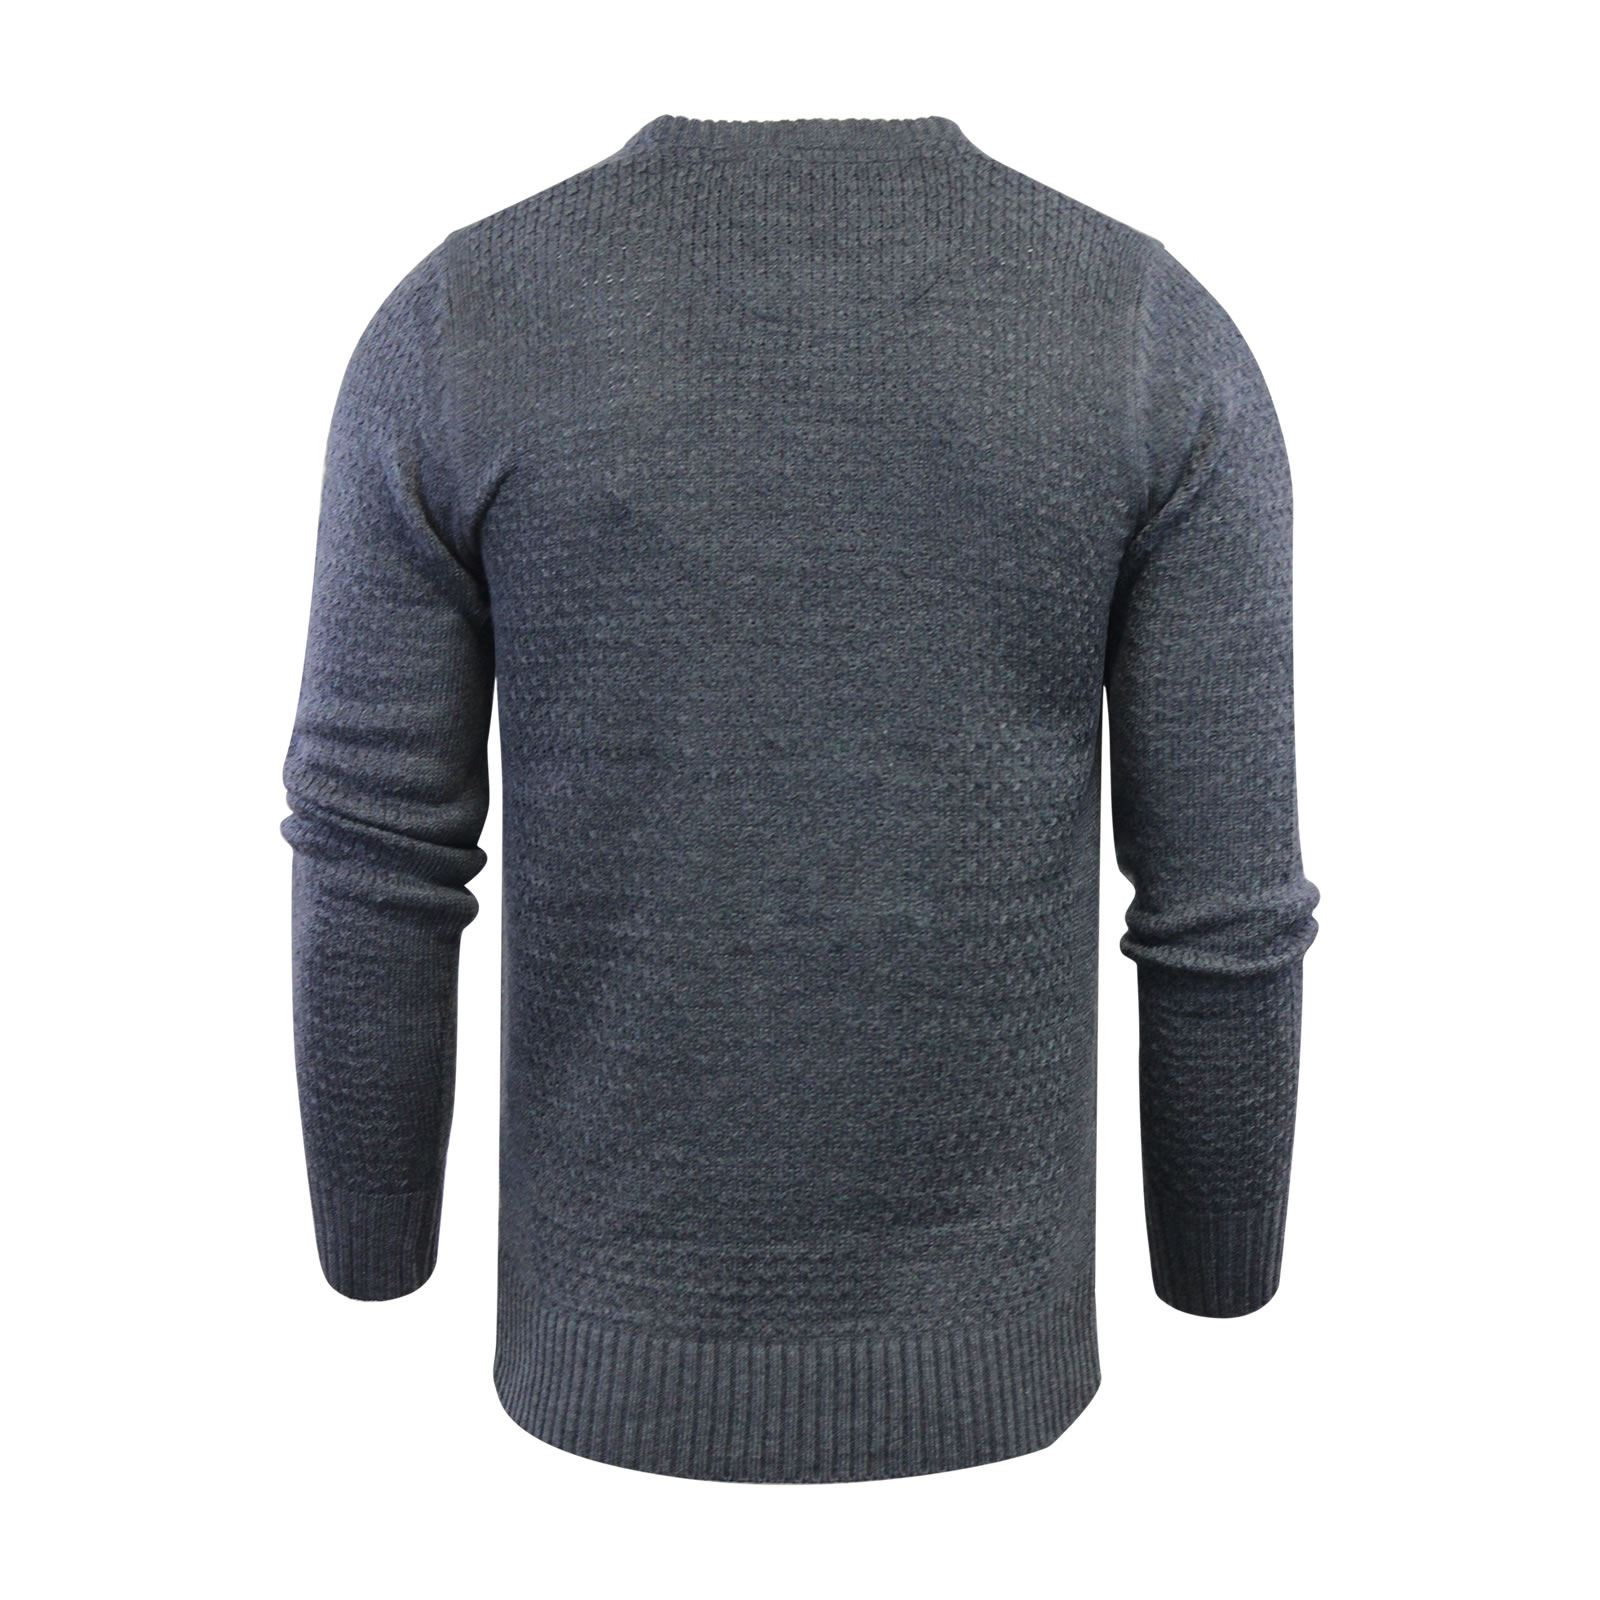 Mens-Jumper-Brave-Soul-Knitted-Sweater-In-Various-Styles thumbnail 17